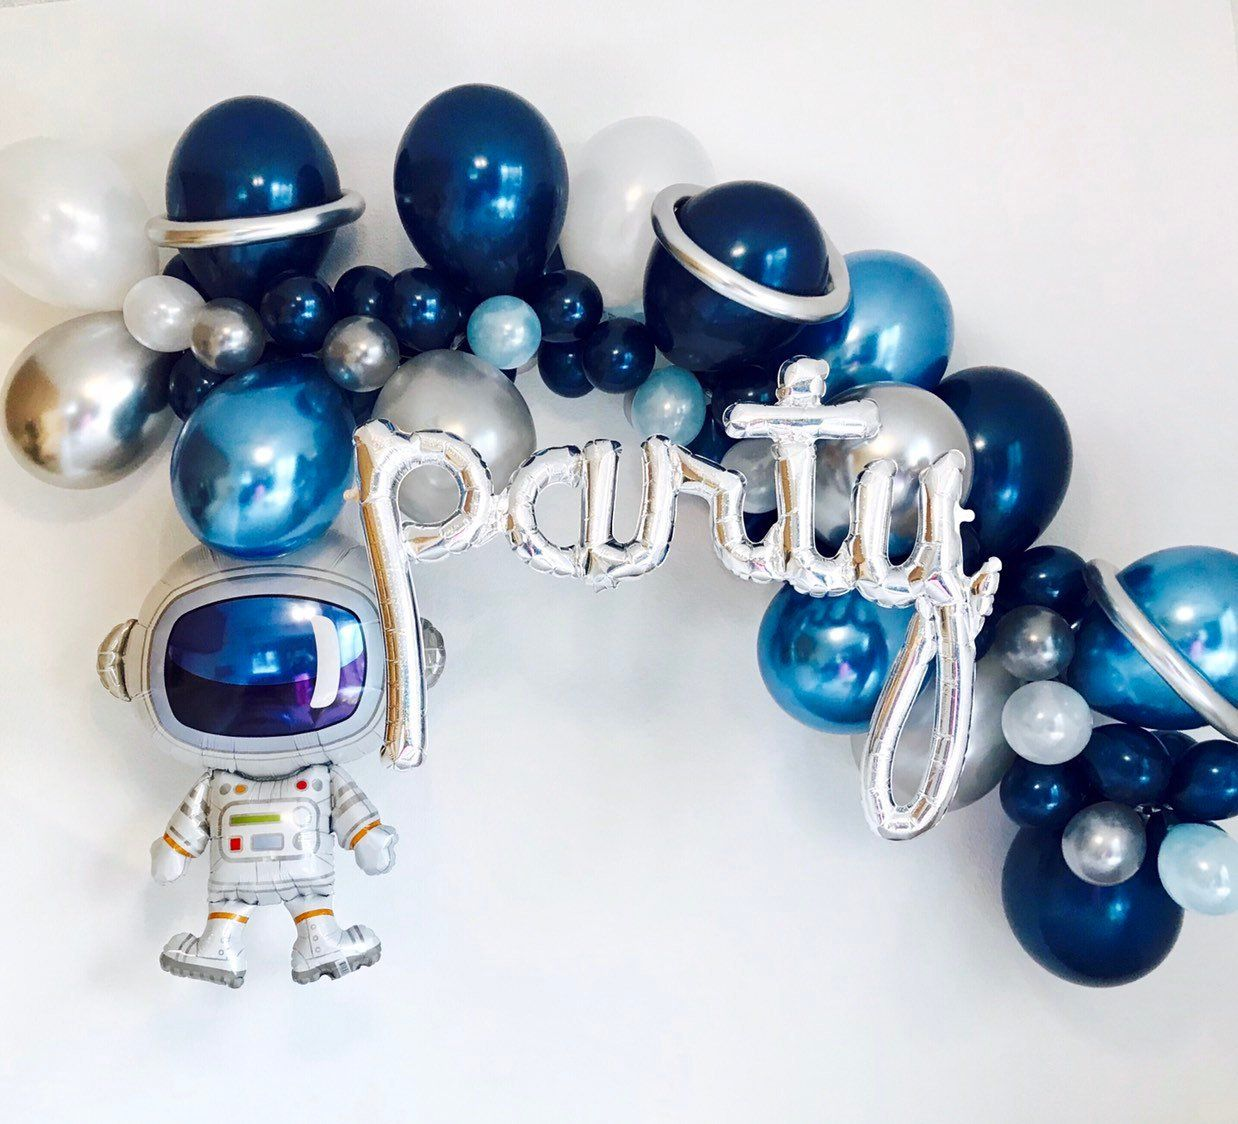 Space Balloon Garland, Space party, Out of this world, Outer Space Party, Astronaut, Blast off Birthday, Space Birthday, To the Moon #outerspaceparty